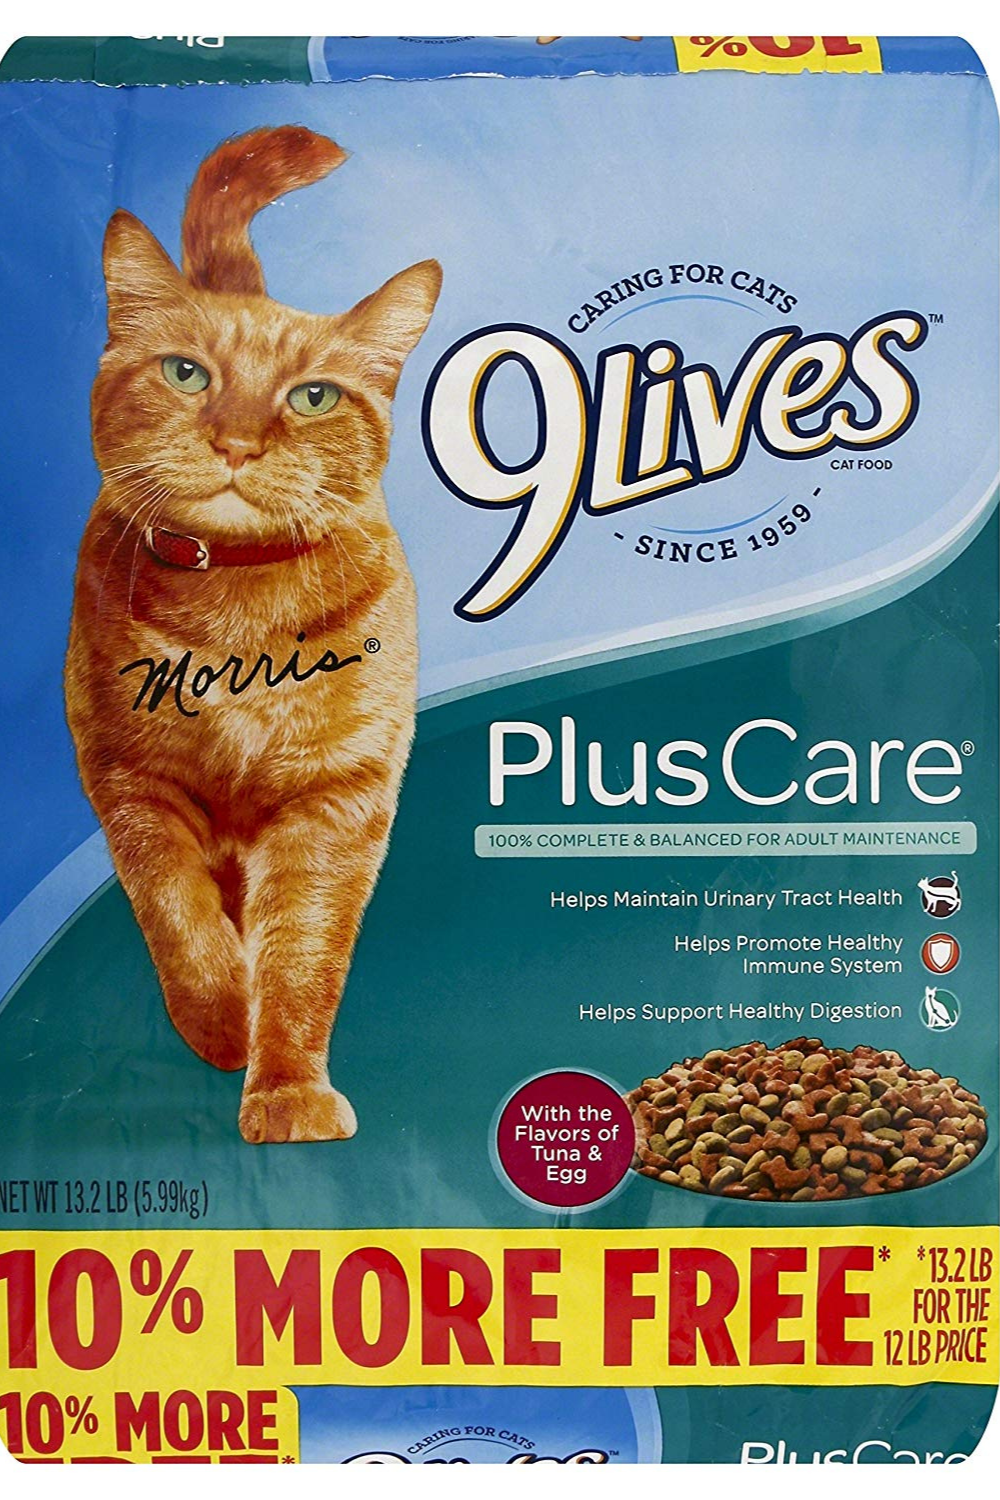 9lives Plus Care Dry Cat Food 13 3 Lb Best Cat Food Brands Products In 2020 Cat Food Brands Best Cat Food Dry Cat Food